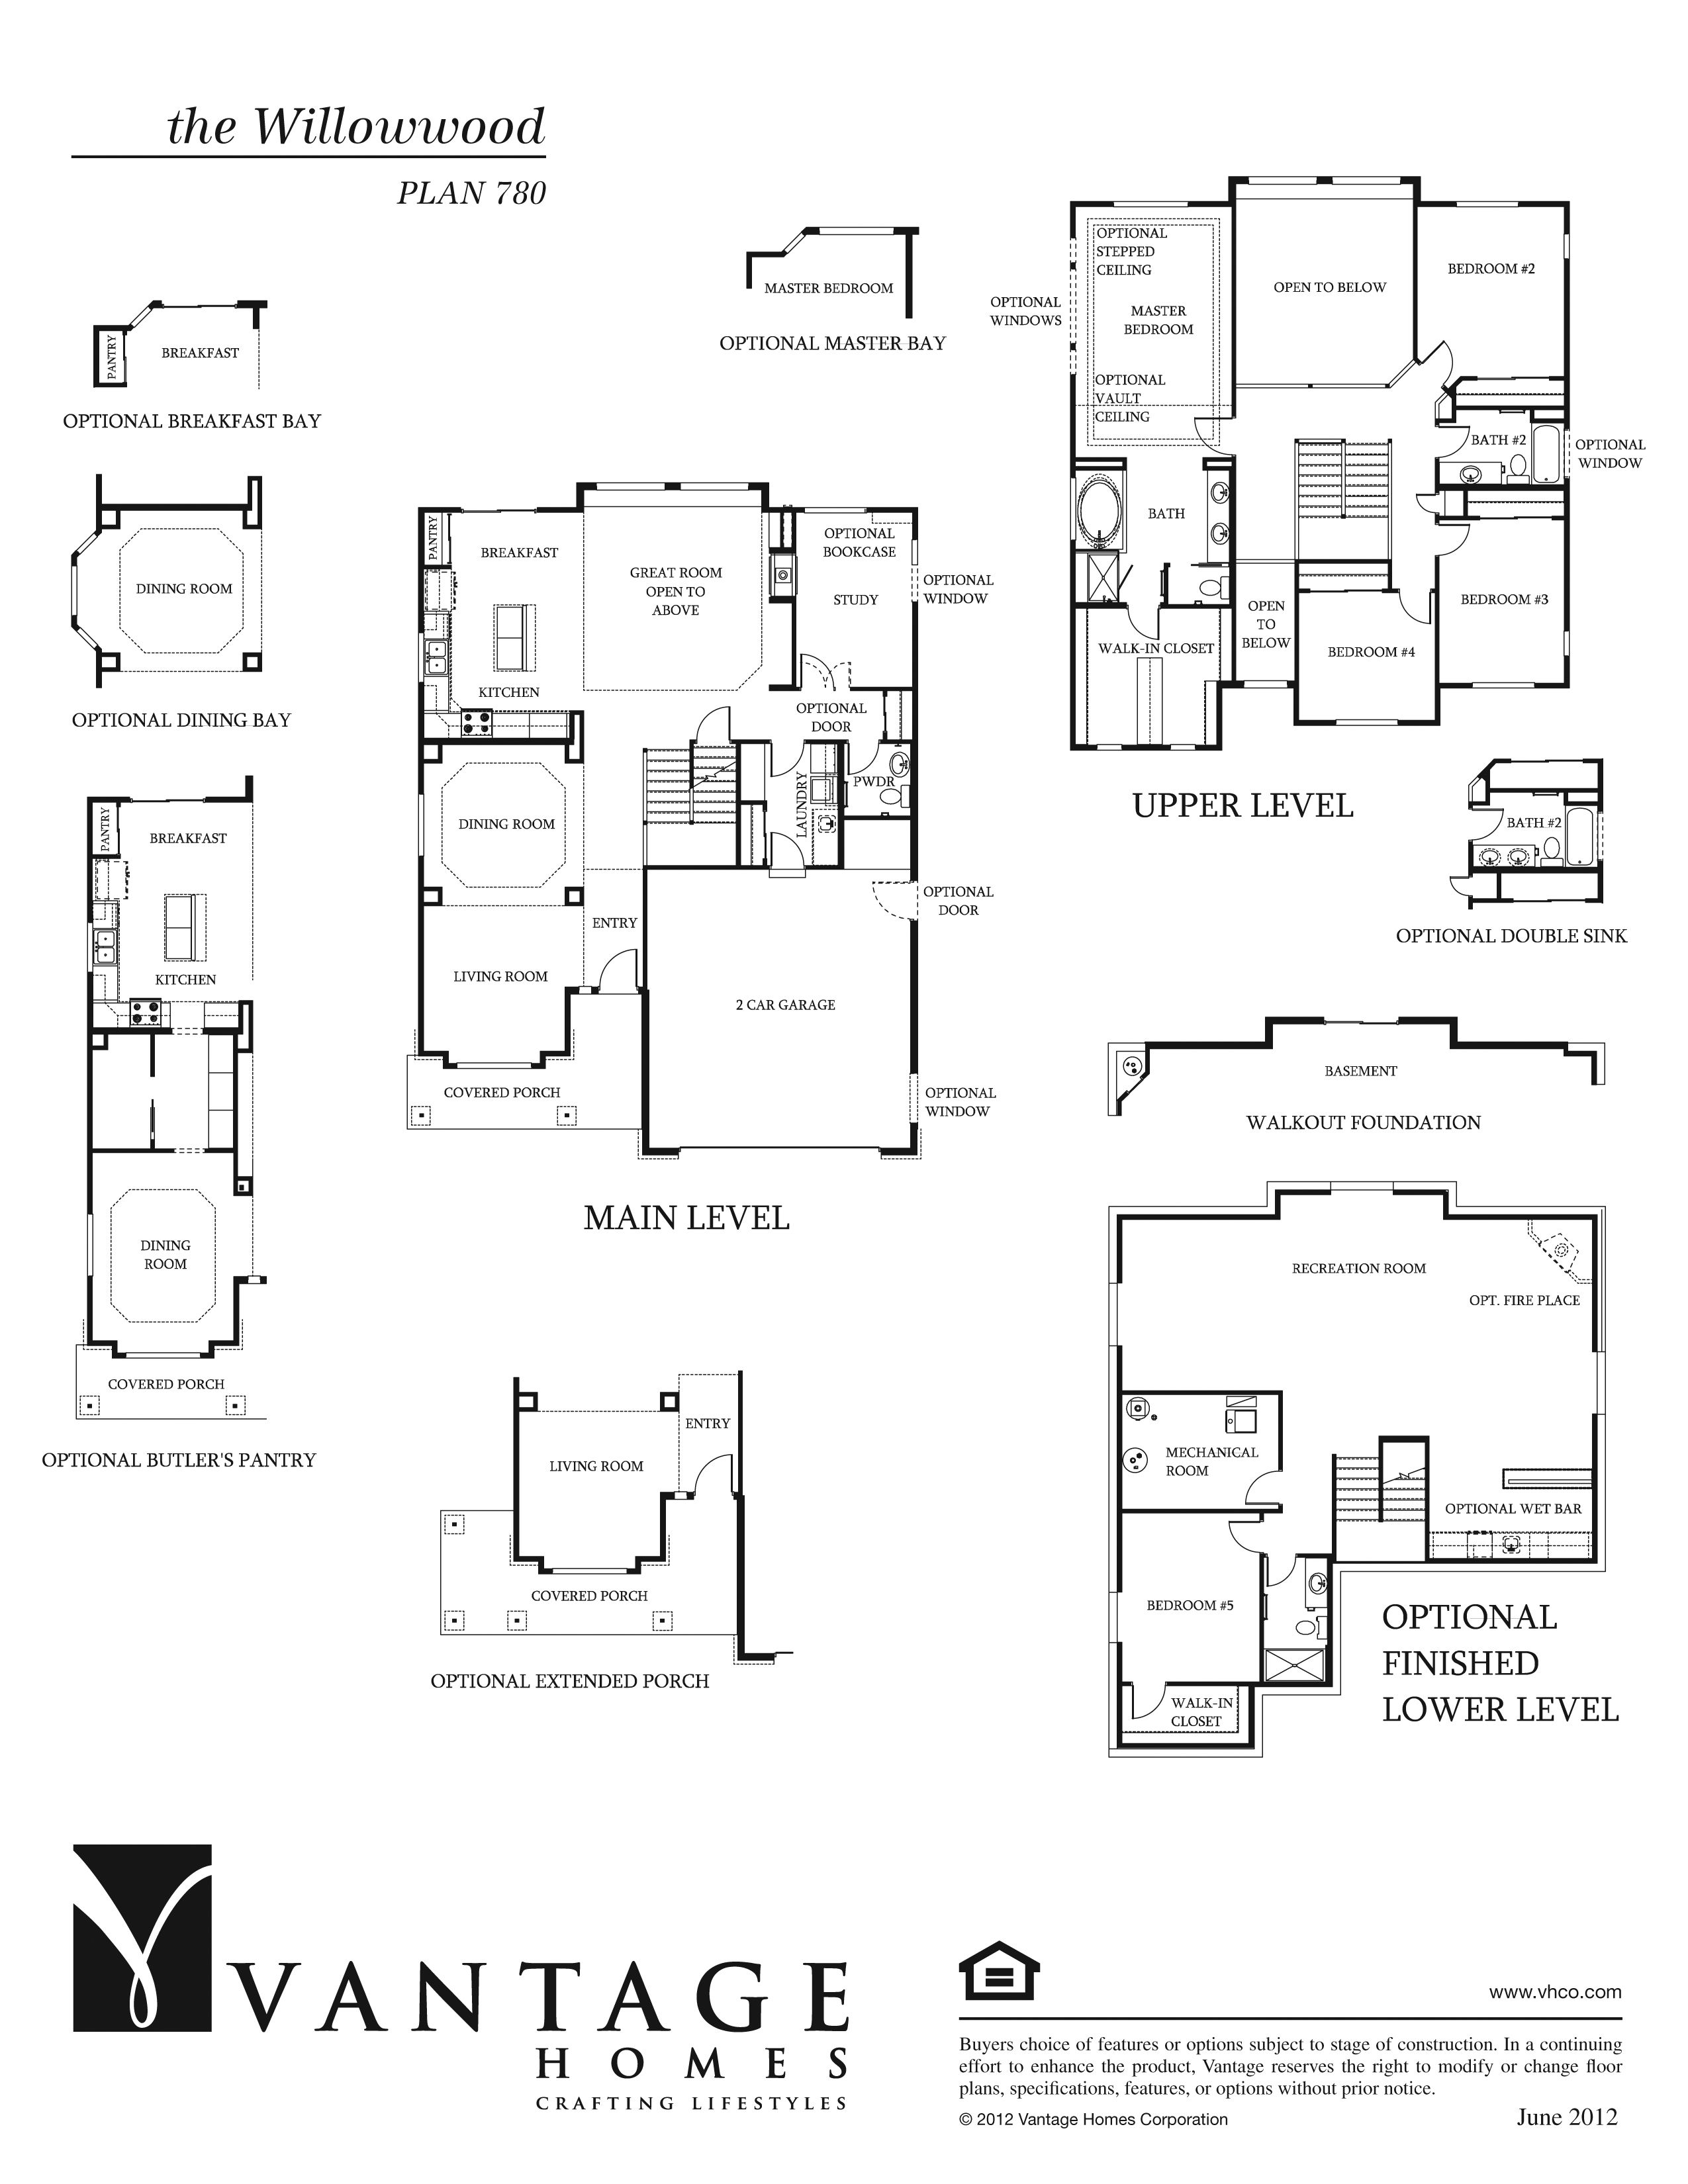 Willowwood Floorplan Layout Floor Plans Space Planning House Elevation